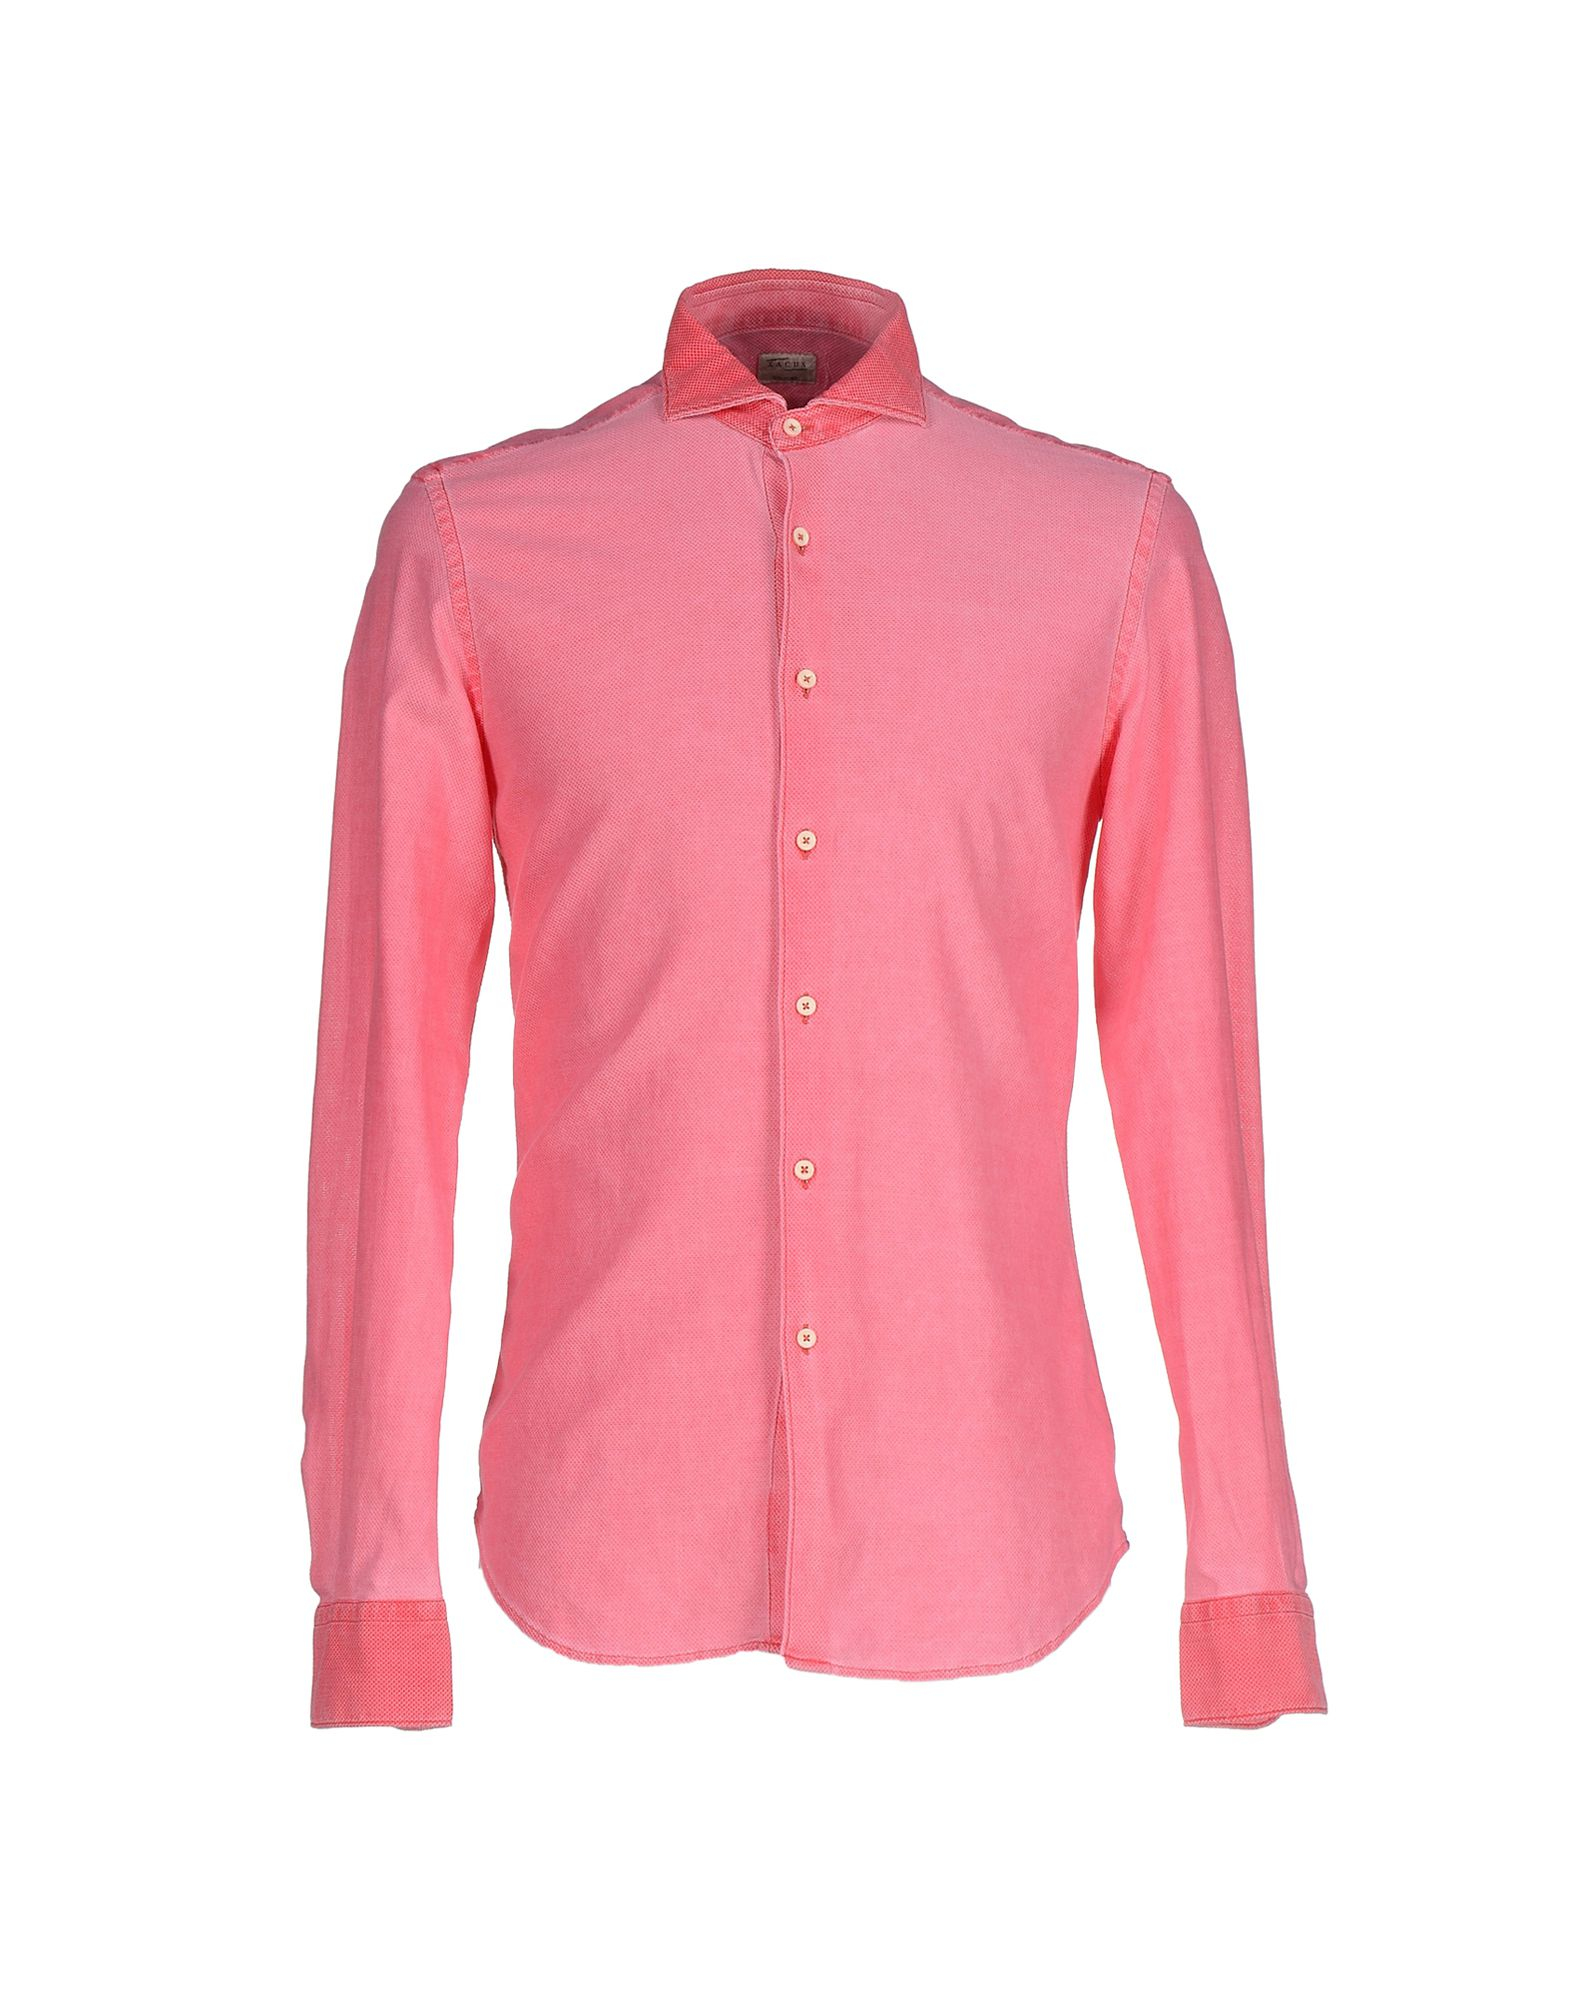 Xacus shirt in pink for men coral lyst for Coral shirts for guys